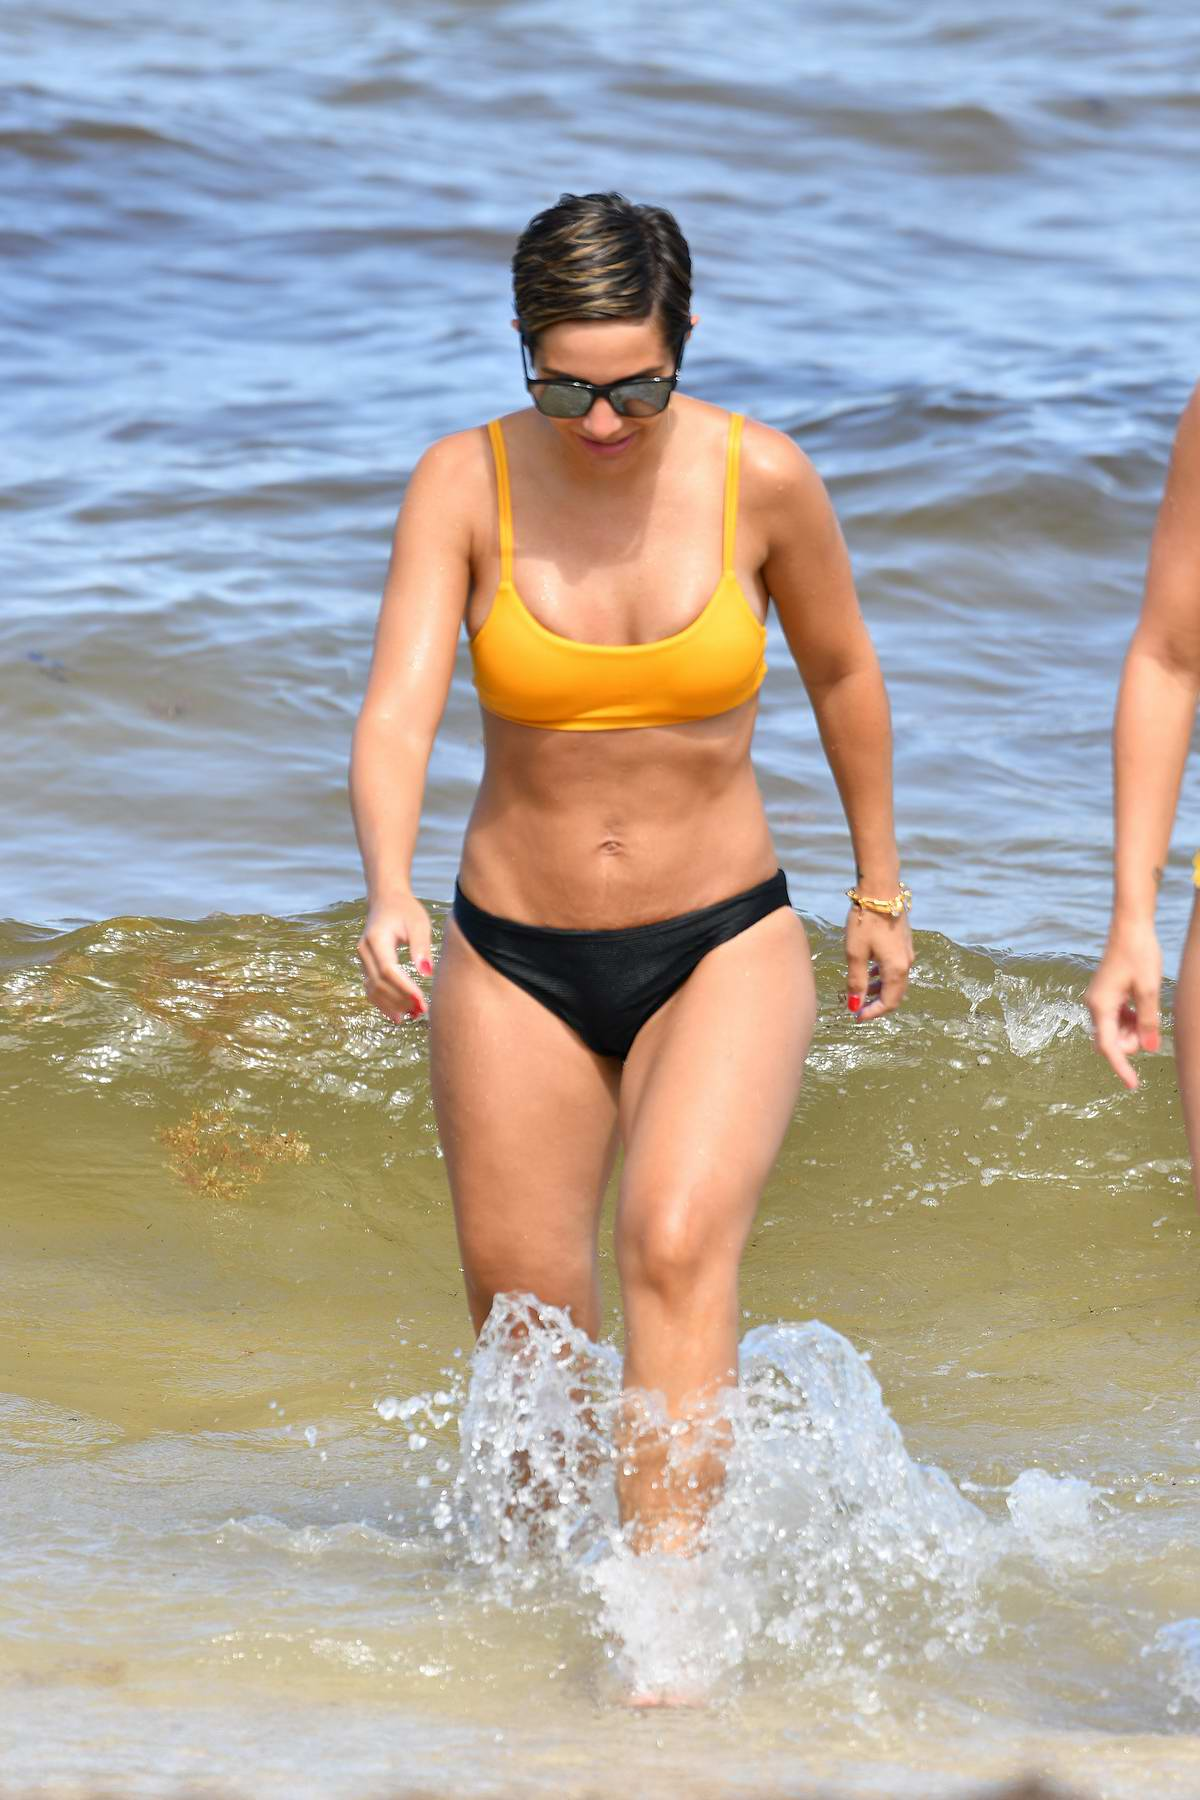 Frankie Bridge shows off her bikini body as she spends an afternoon relaxing on the beach in Miami, Florida